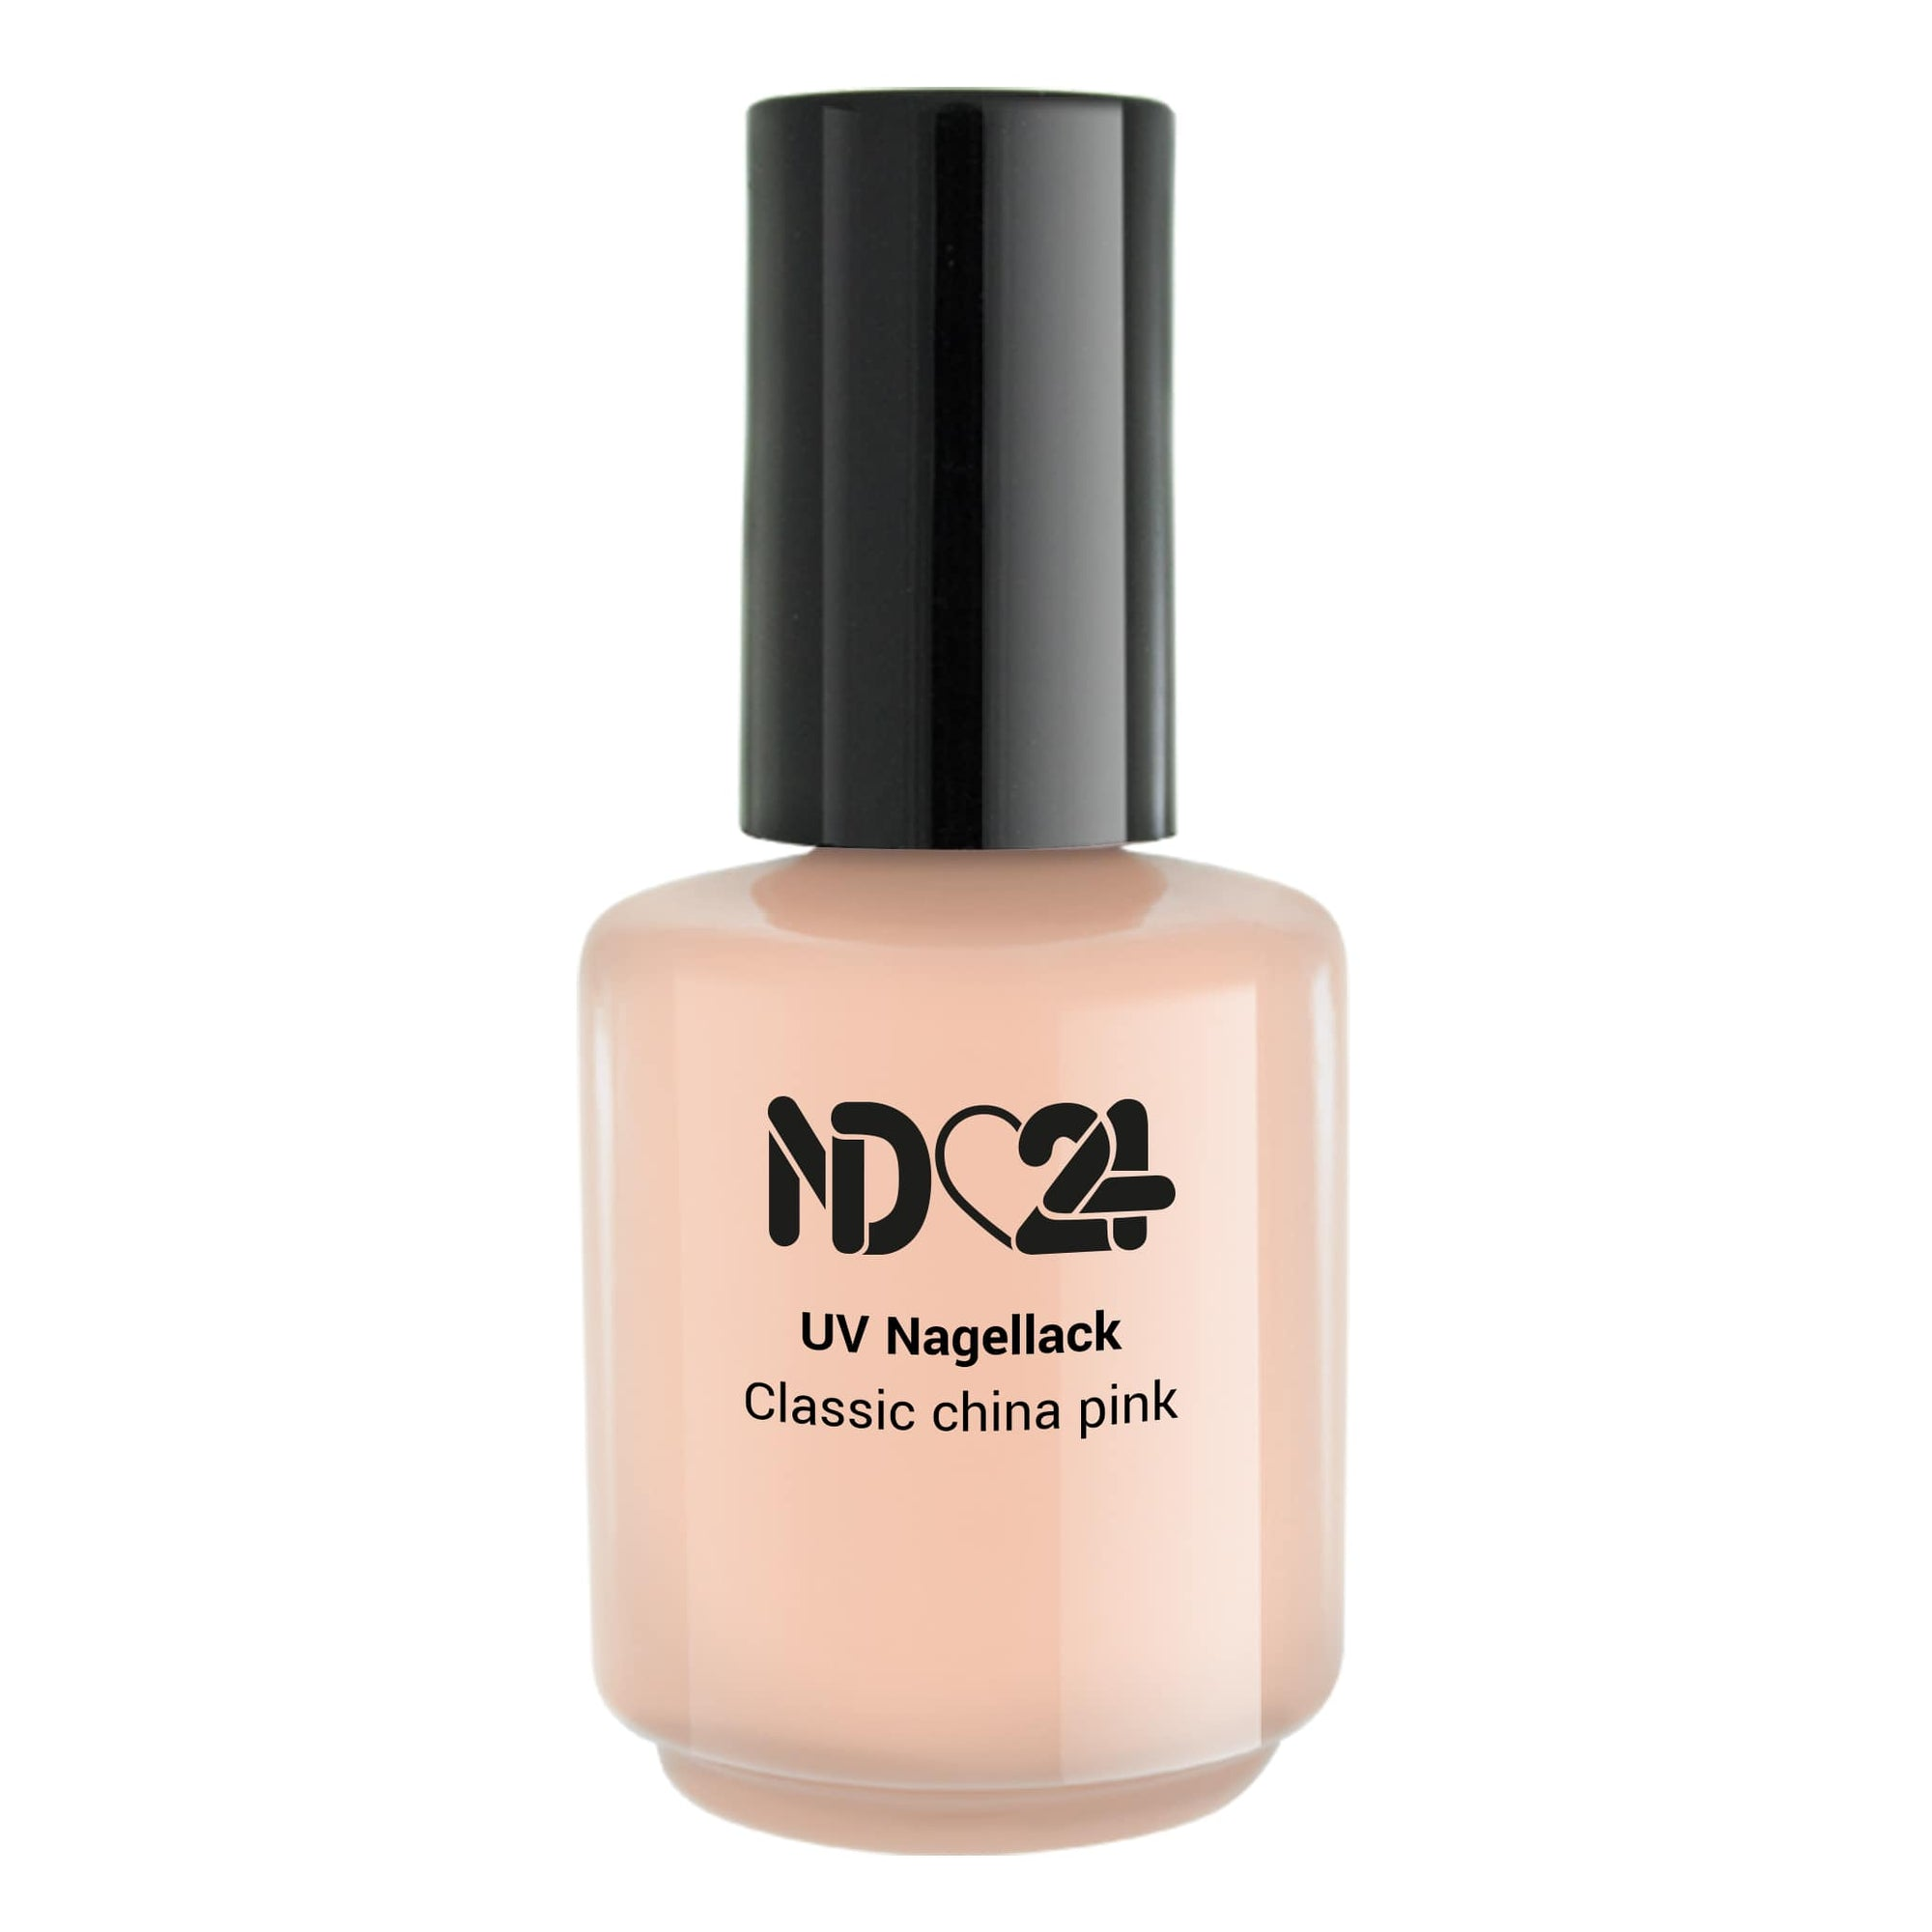 UV Nagellack Classic china pink